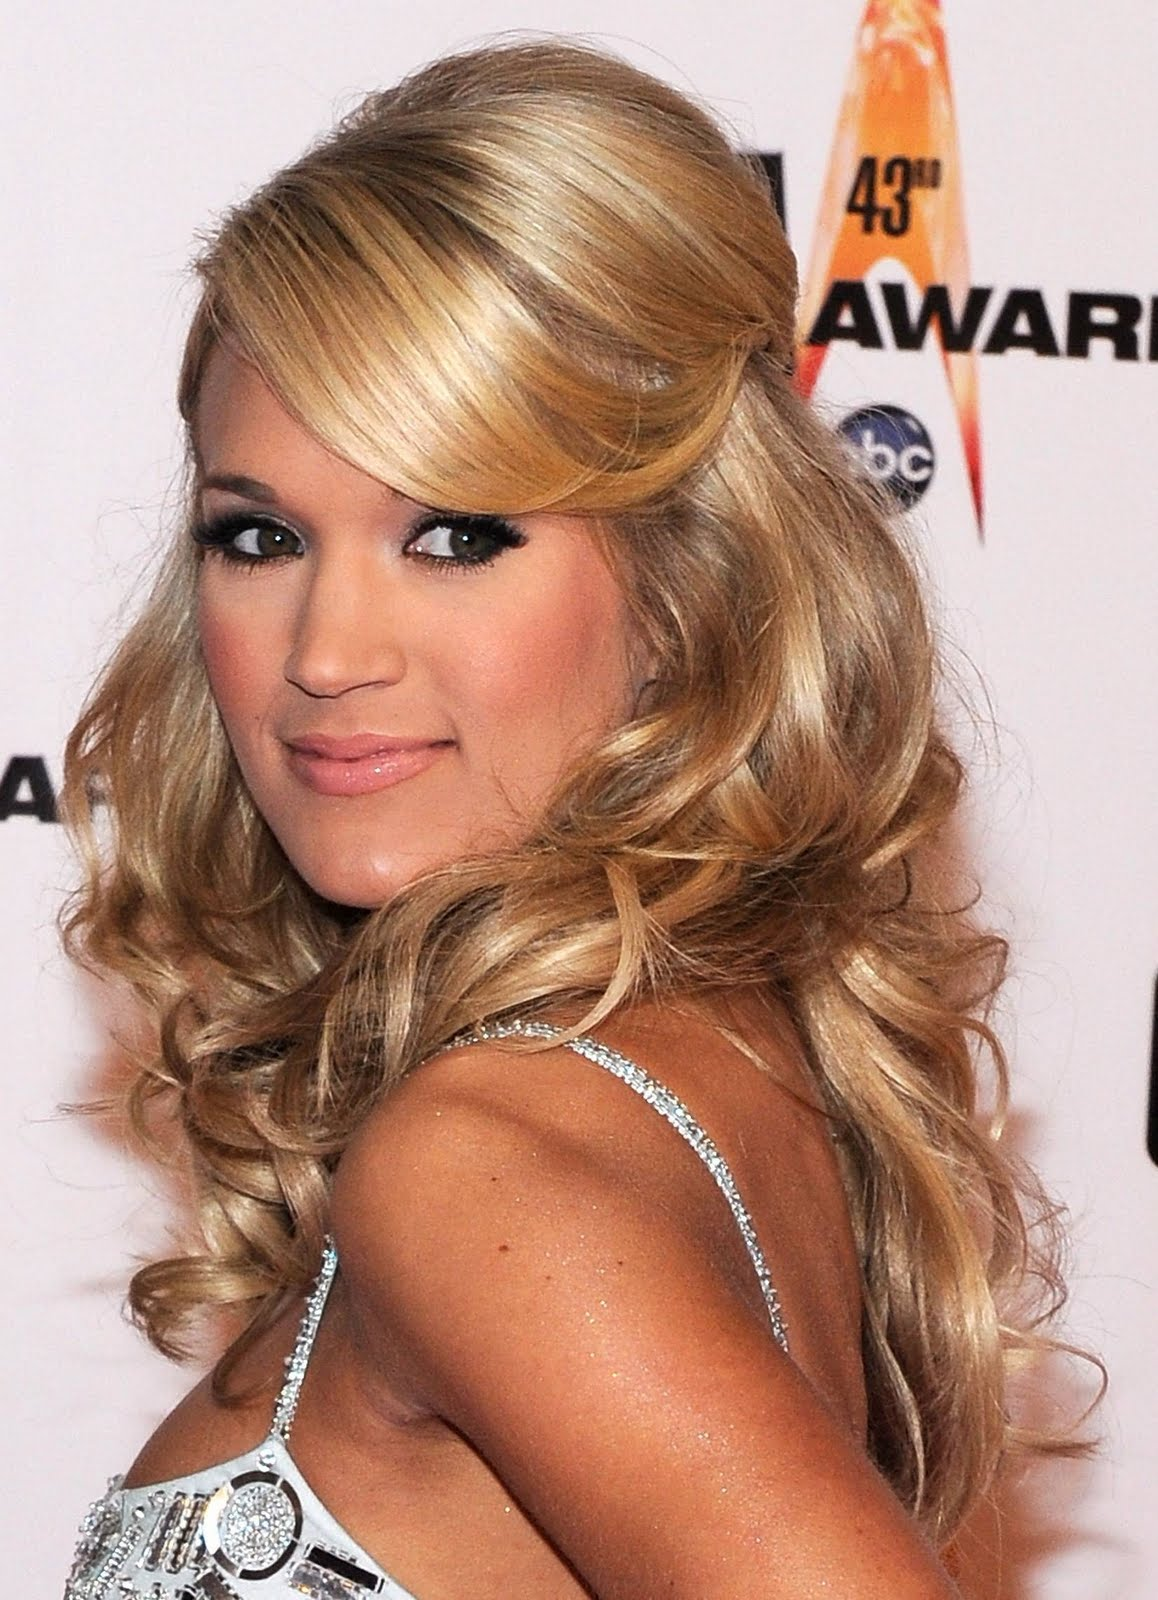 Ponytail Hairstyles 2012 Half Up Half Down Hairstyles For 2012